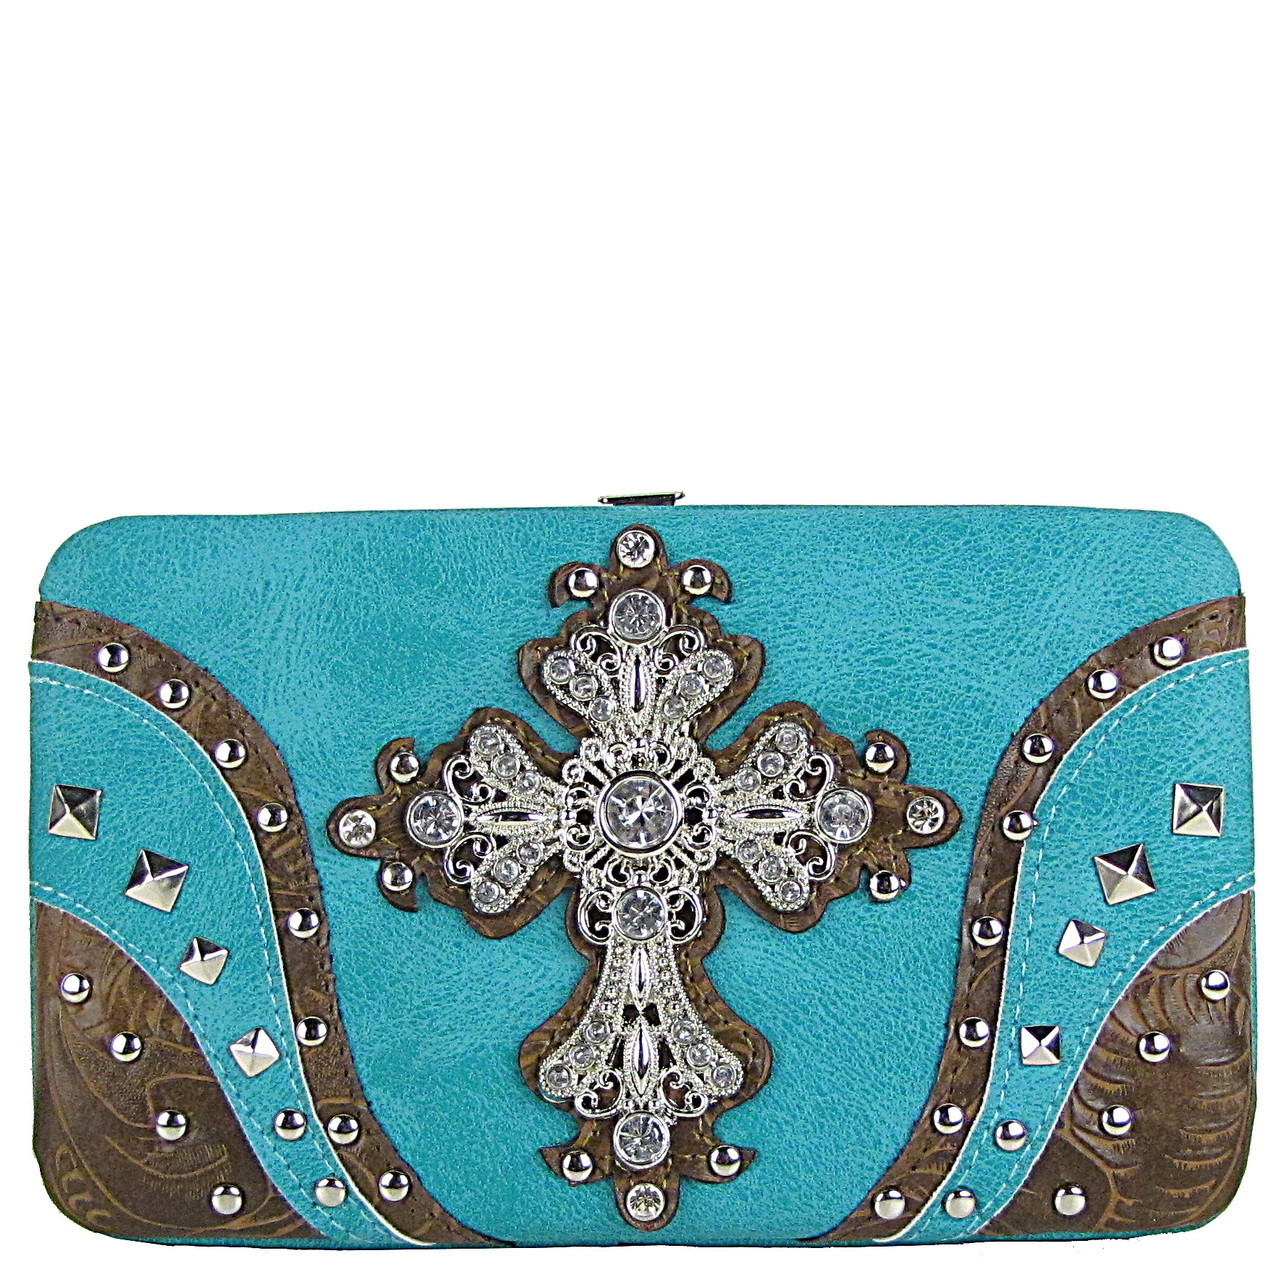 TURQUOISE STUDDED RHINESTONE TOOLED CROSS LOOK FLAT THICK WALLET FW2-04120TRQ